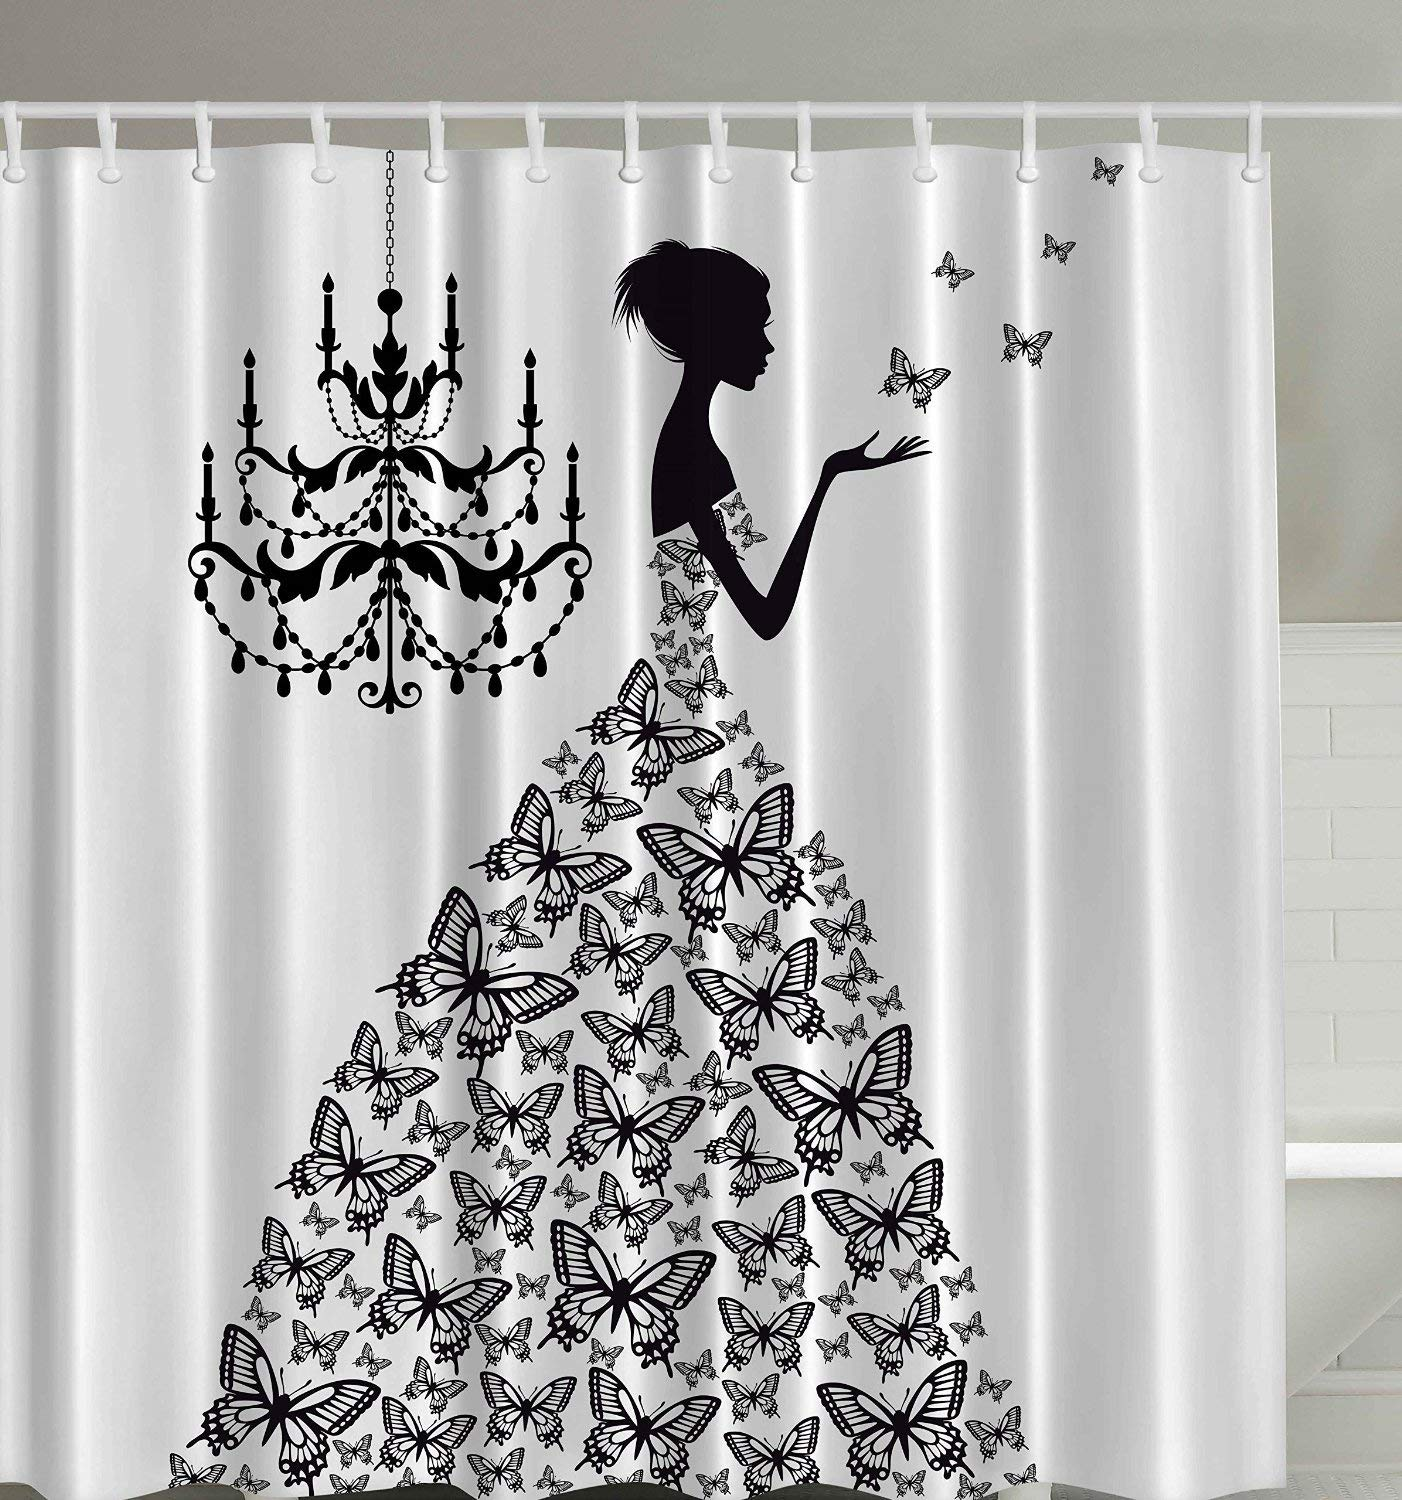 Black Queen Shower Curtain Cheap Queen Shower Curtain Find Queen Shower Curtain Deals On